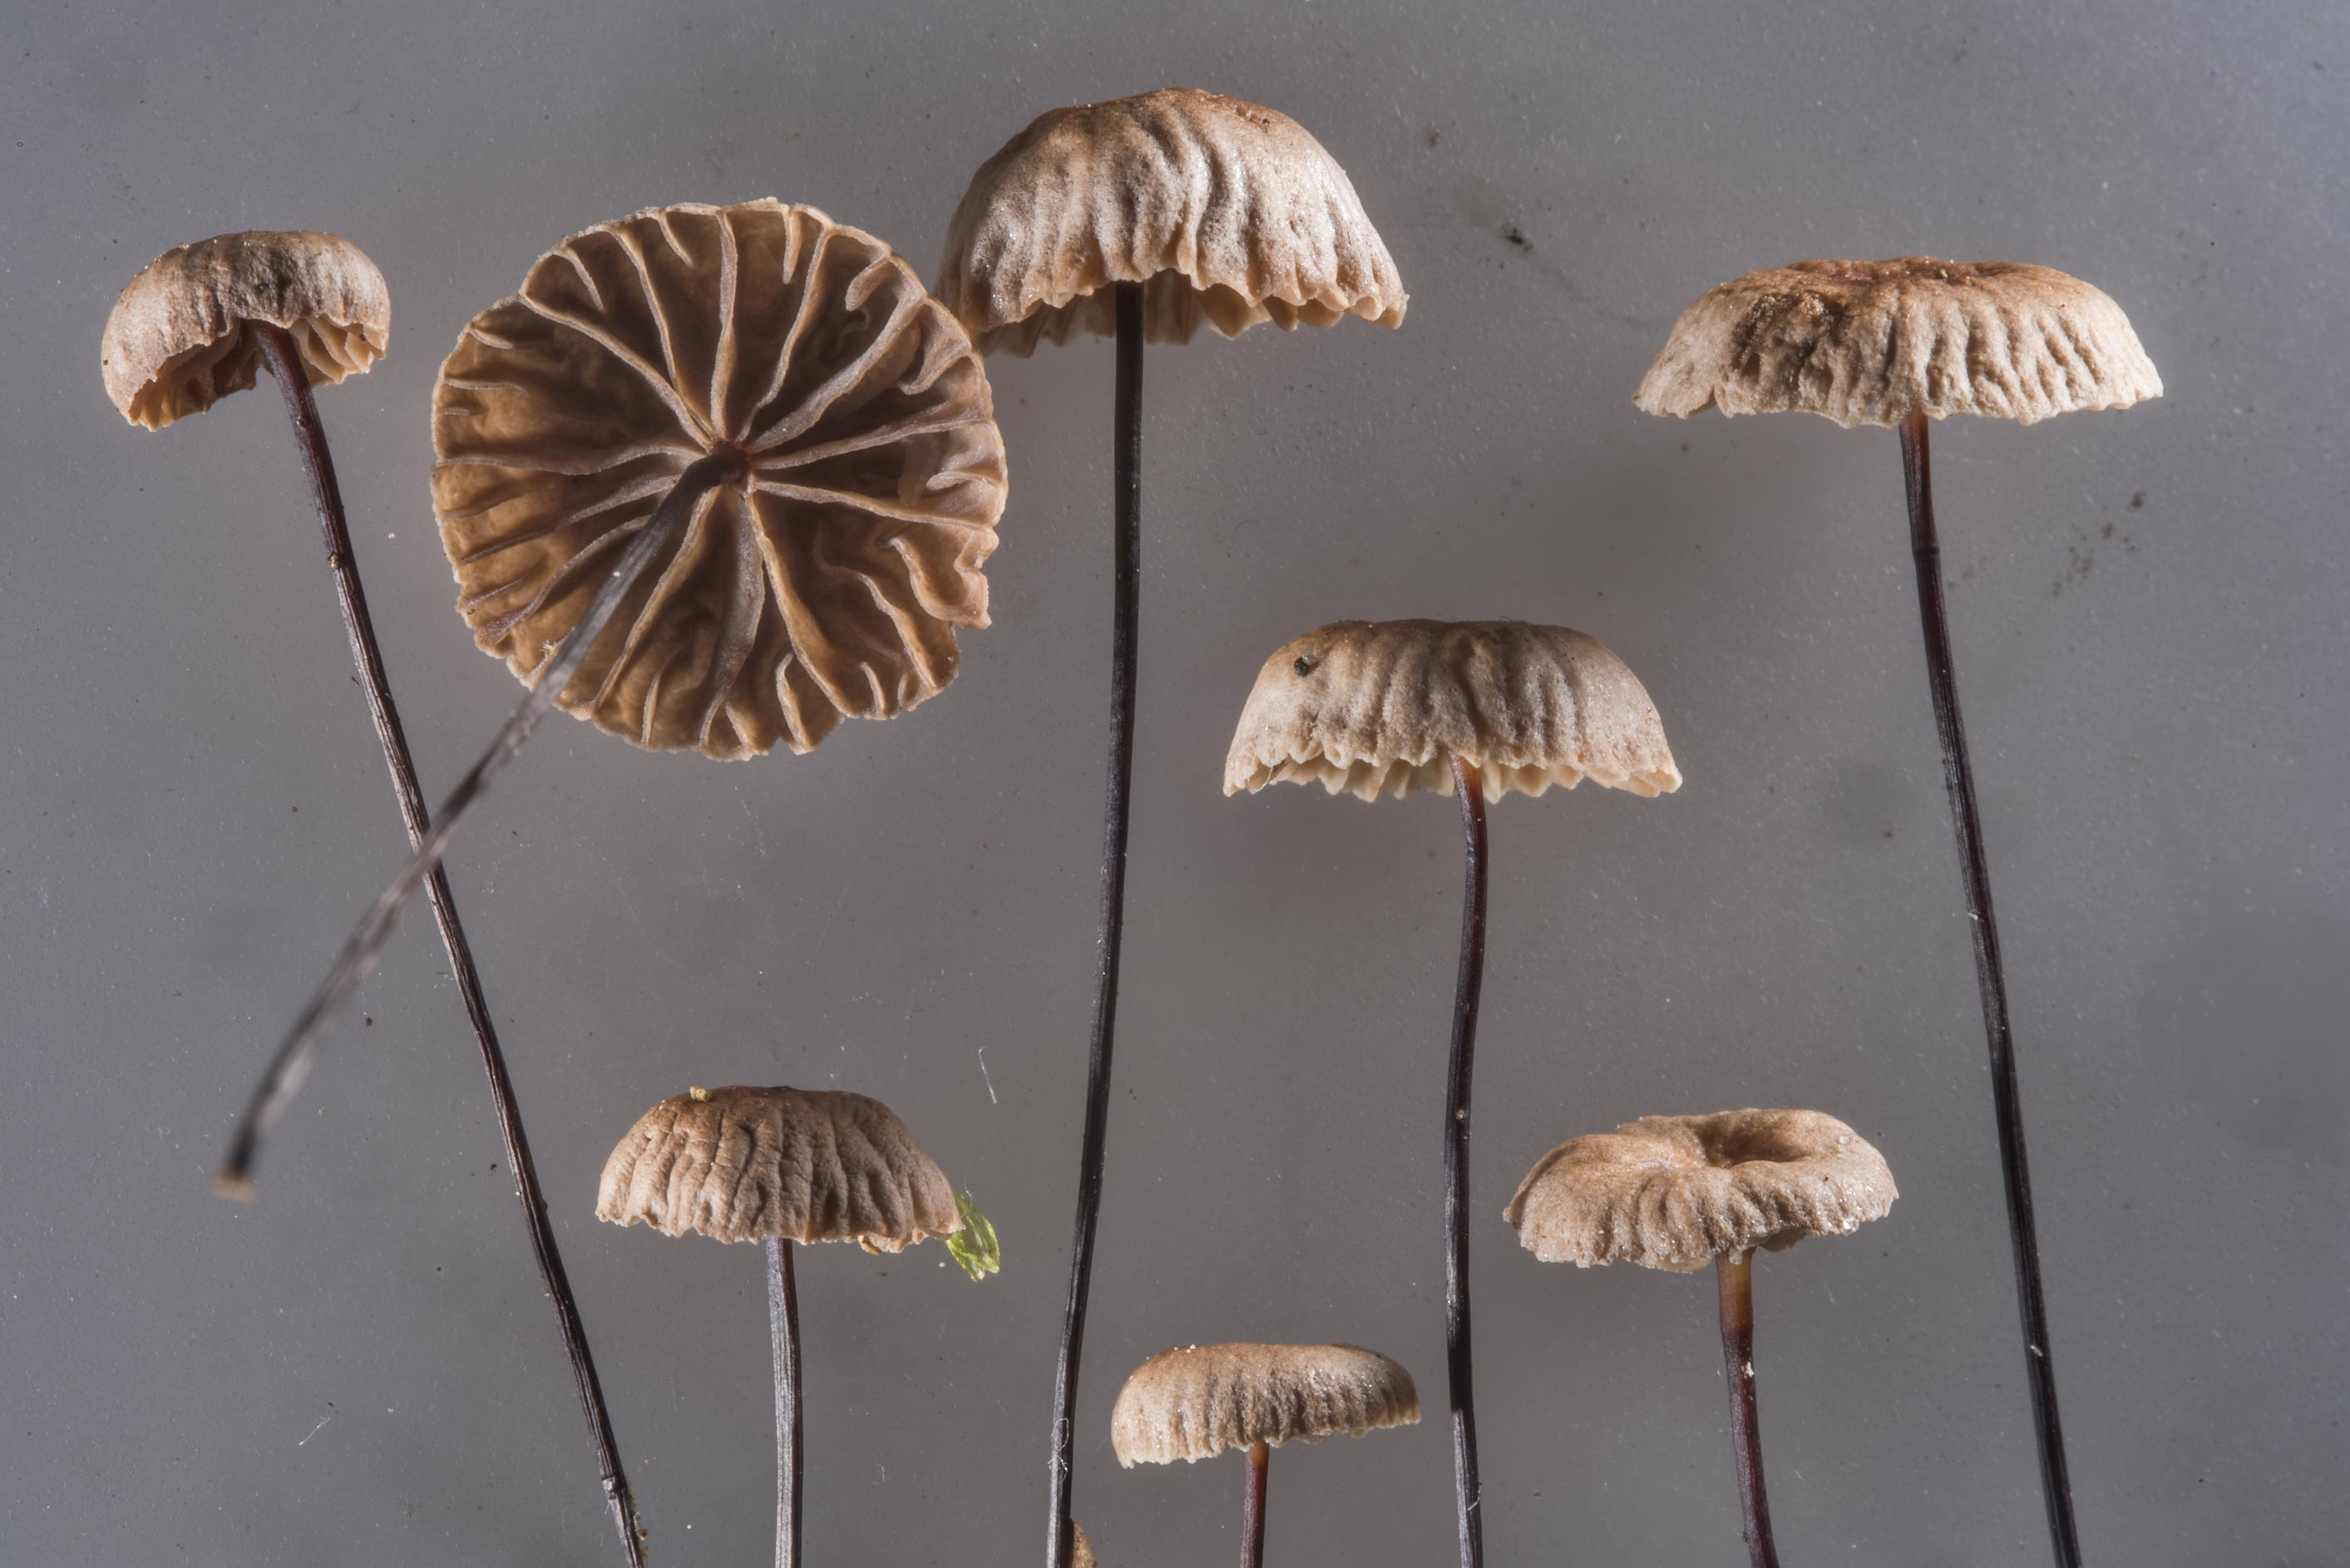 Horsehair parachute mushrooms (Gymnopus...north-west from St.Petersburg. Russia